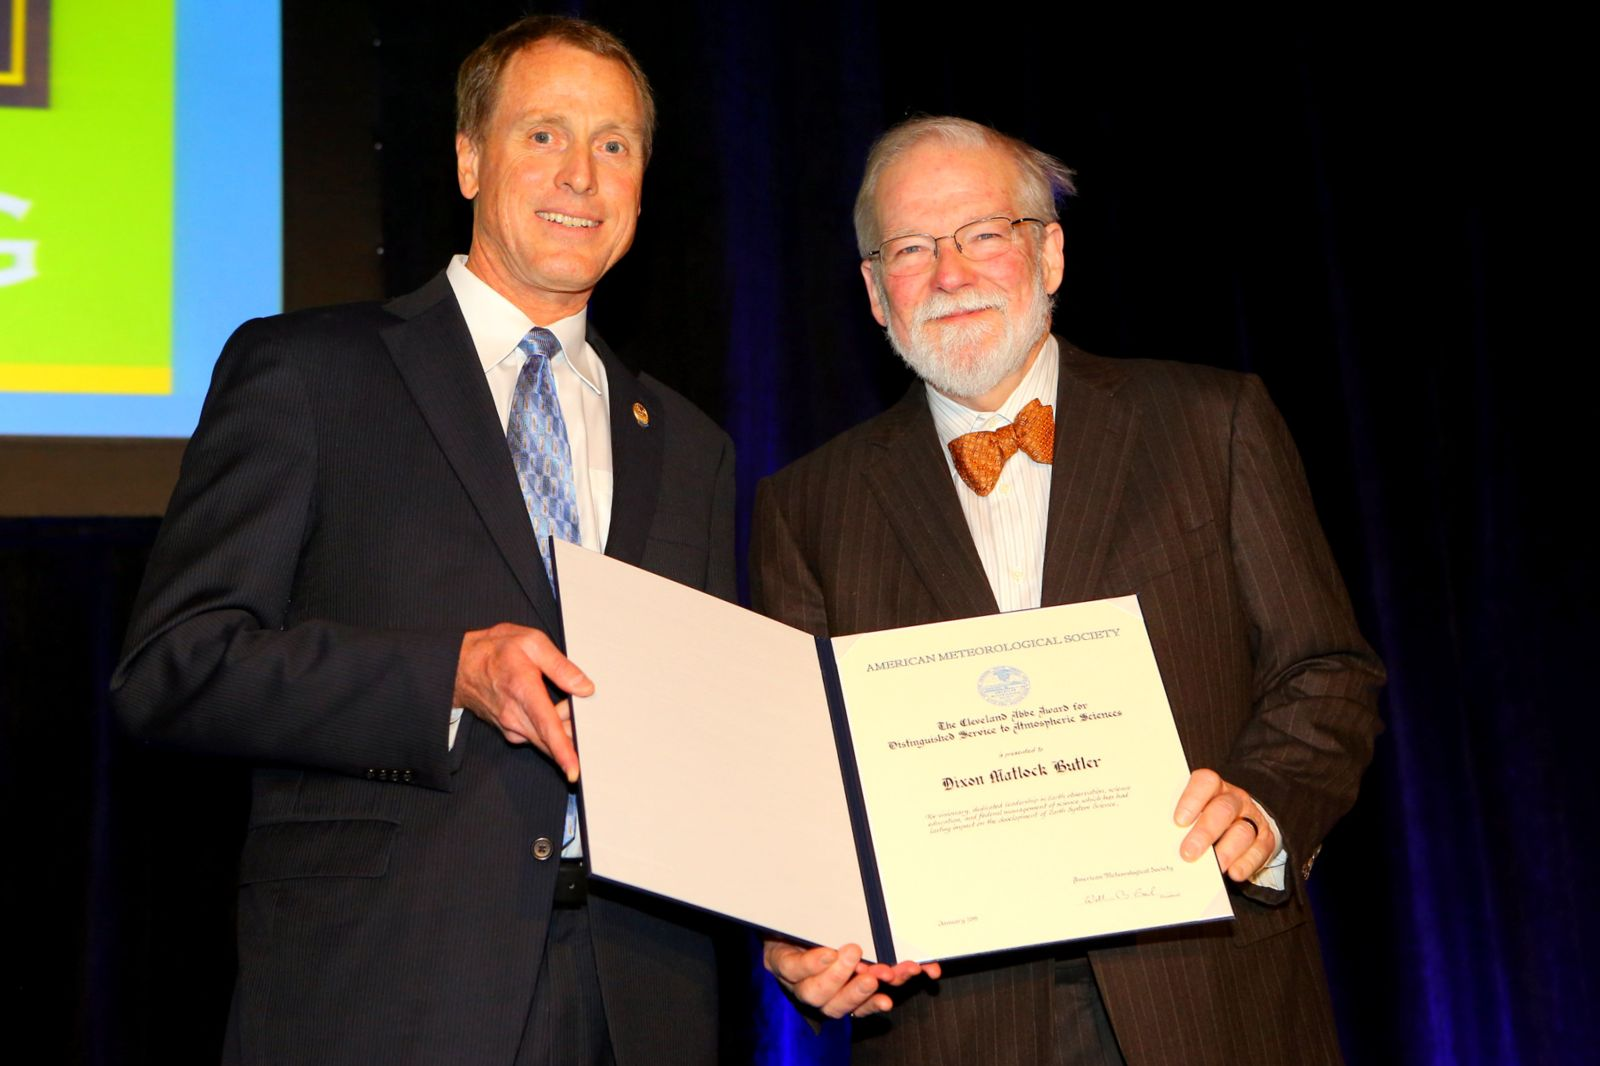 Sydney Levitus receiving The Verner E. Suomi Award from former AMS president J. Marshall Shepherd at the 94th AMS Annual Meeting.